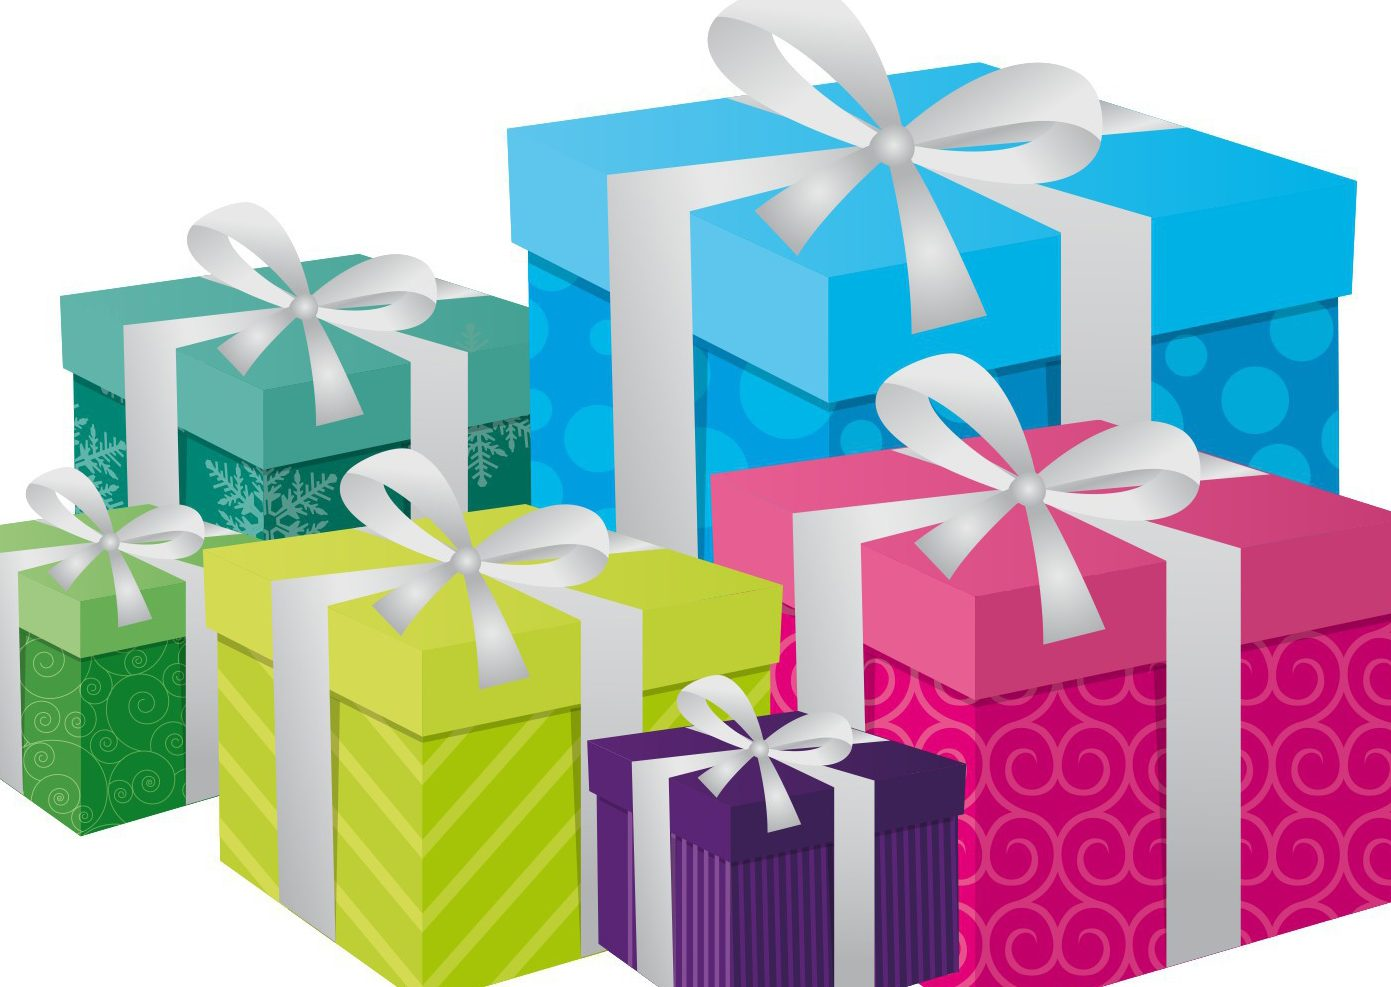 4 Basic Security Measures to Keep Your Presents Safe After Christmas